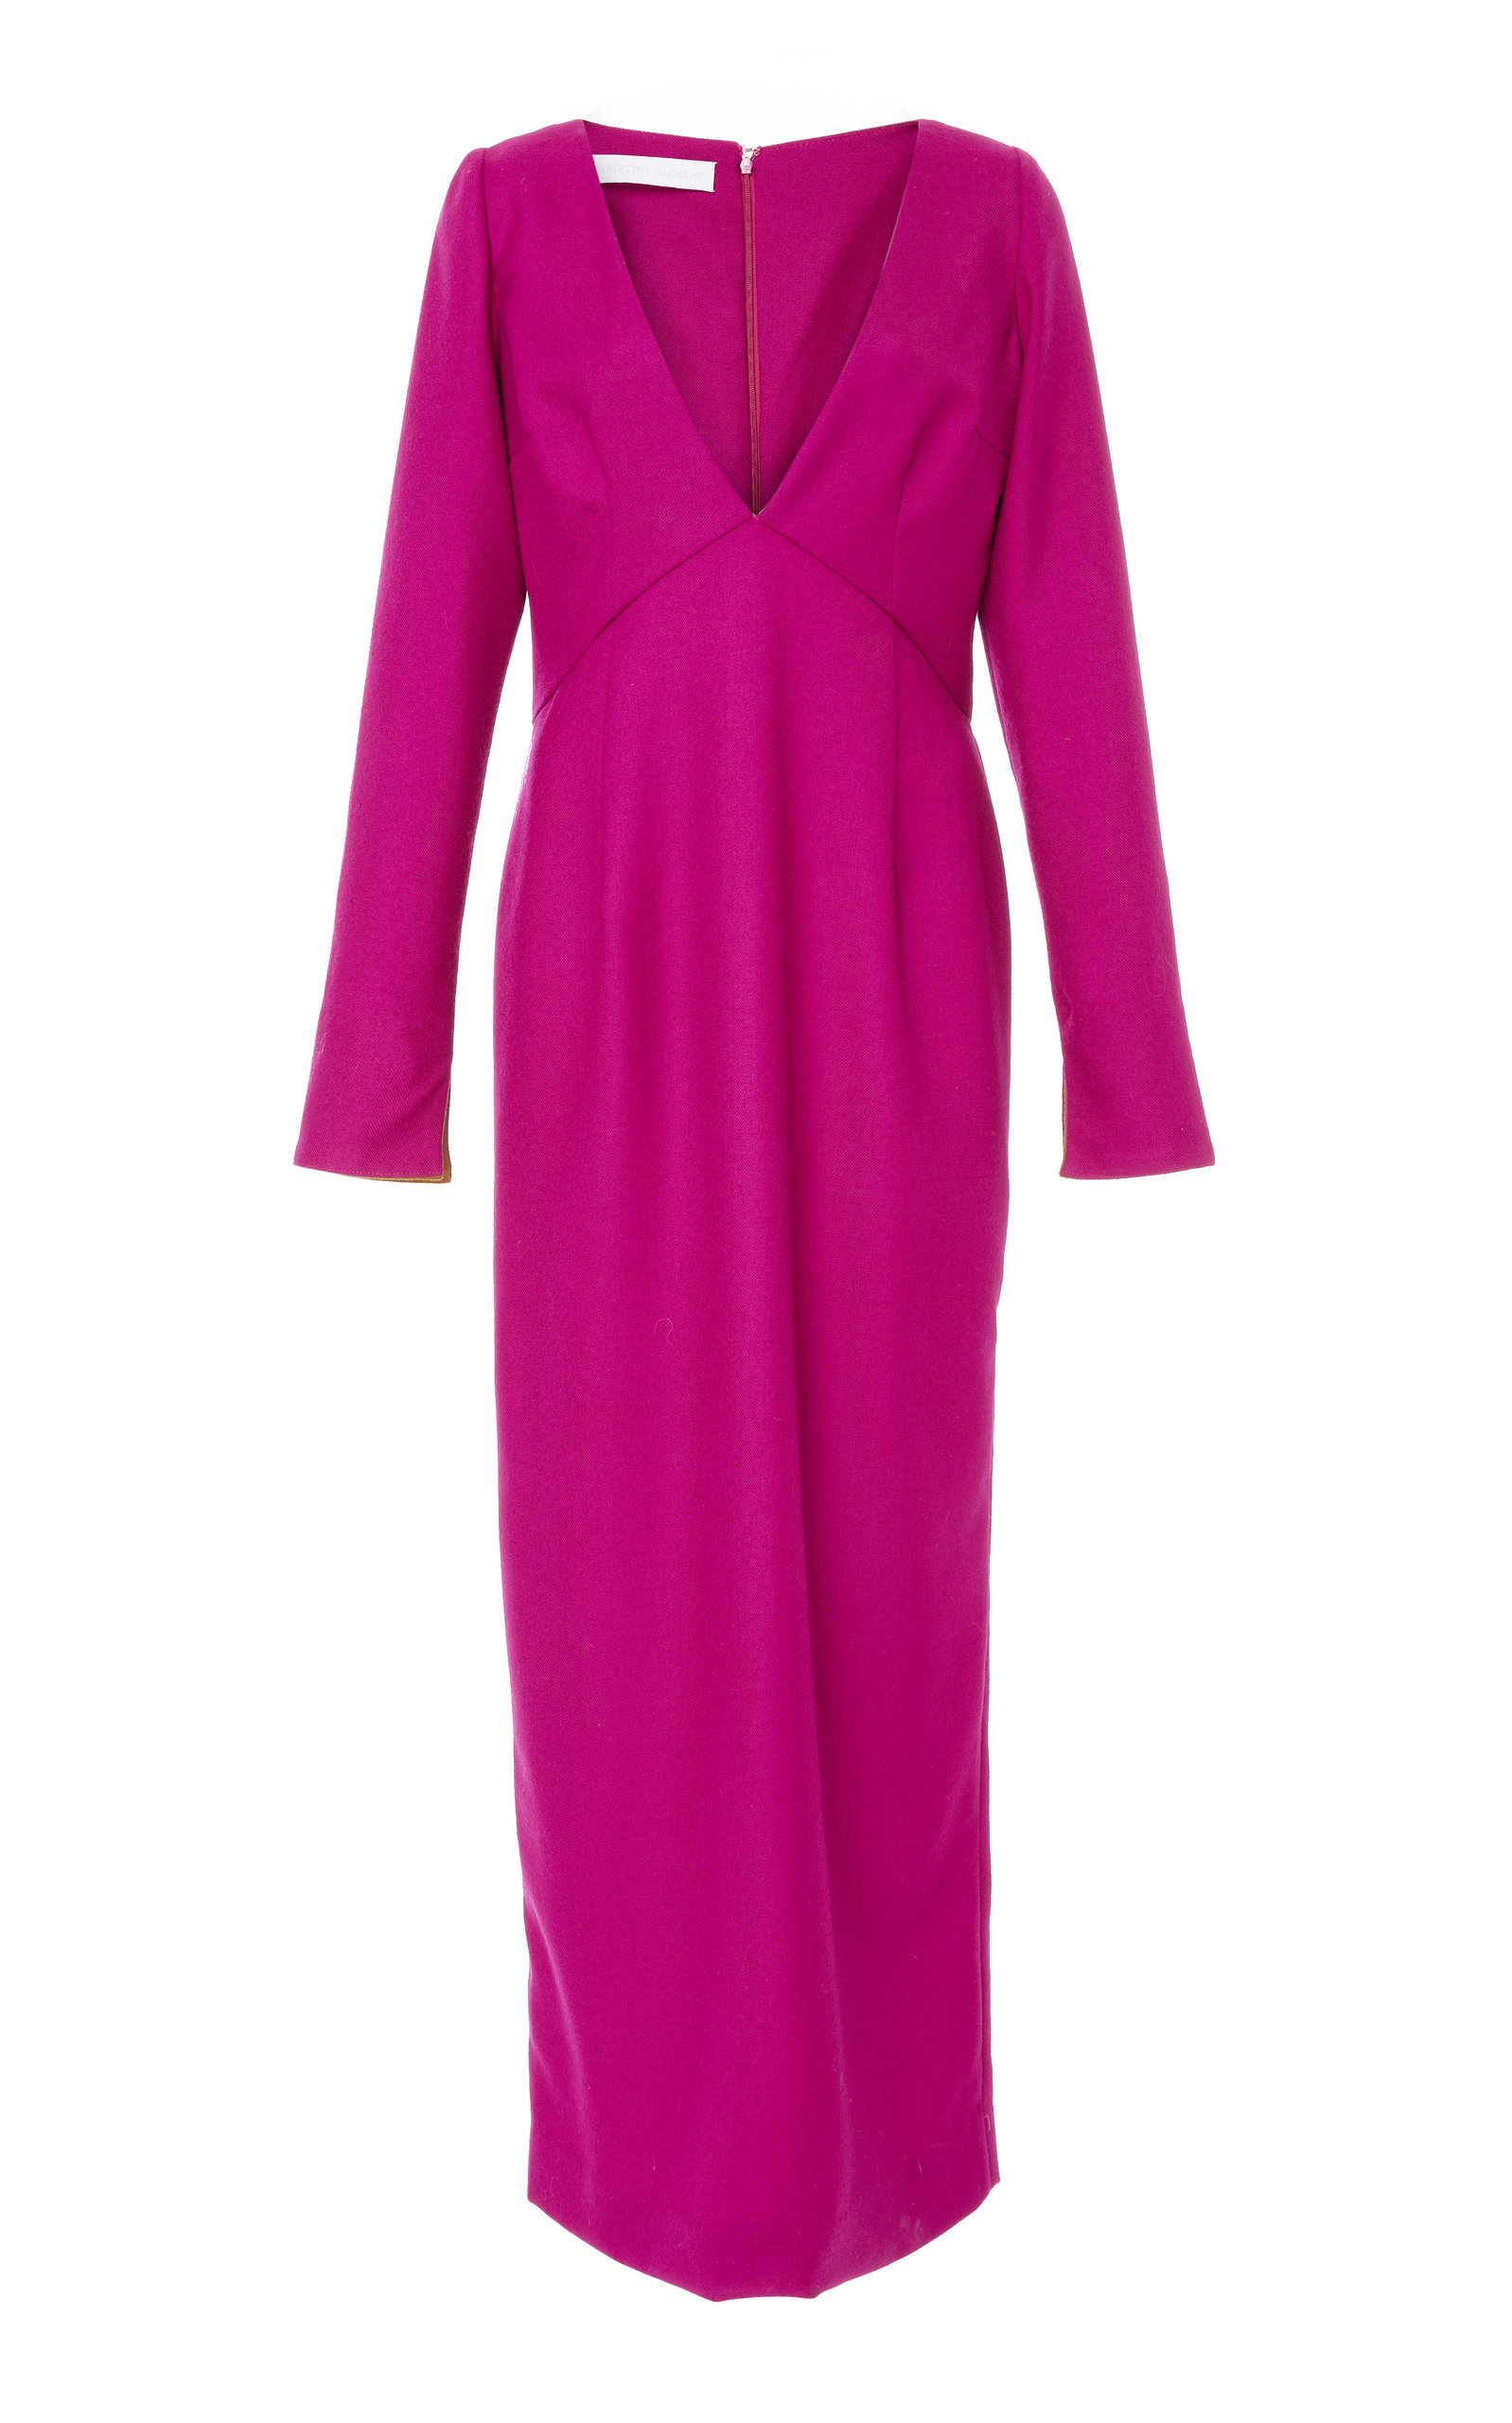 CHRISTINE ALCALAY Orchid V-Neck Dress in Pink